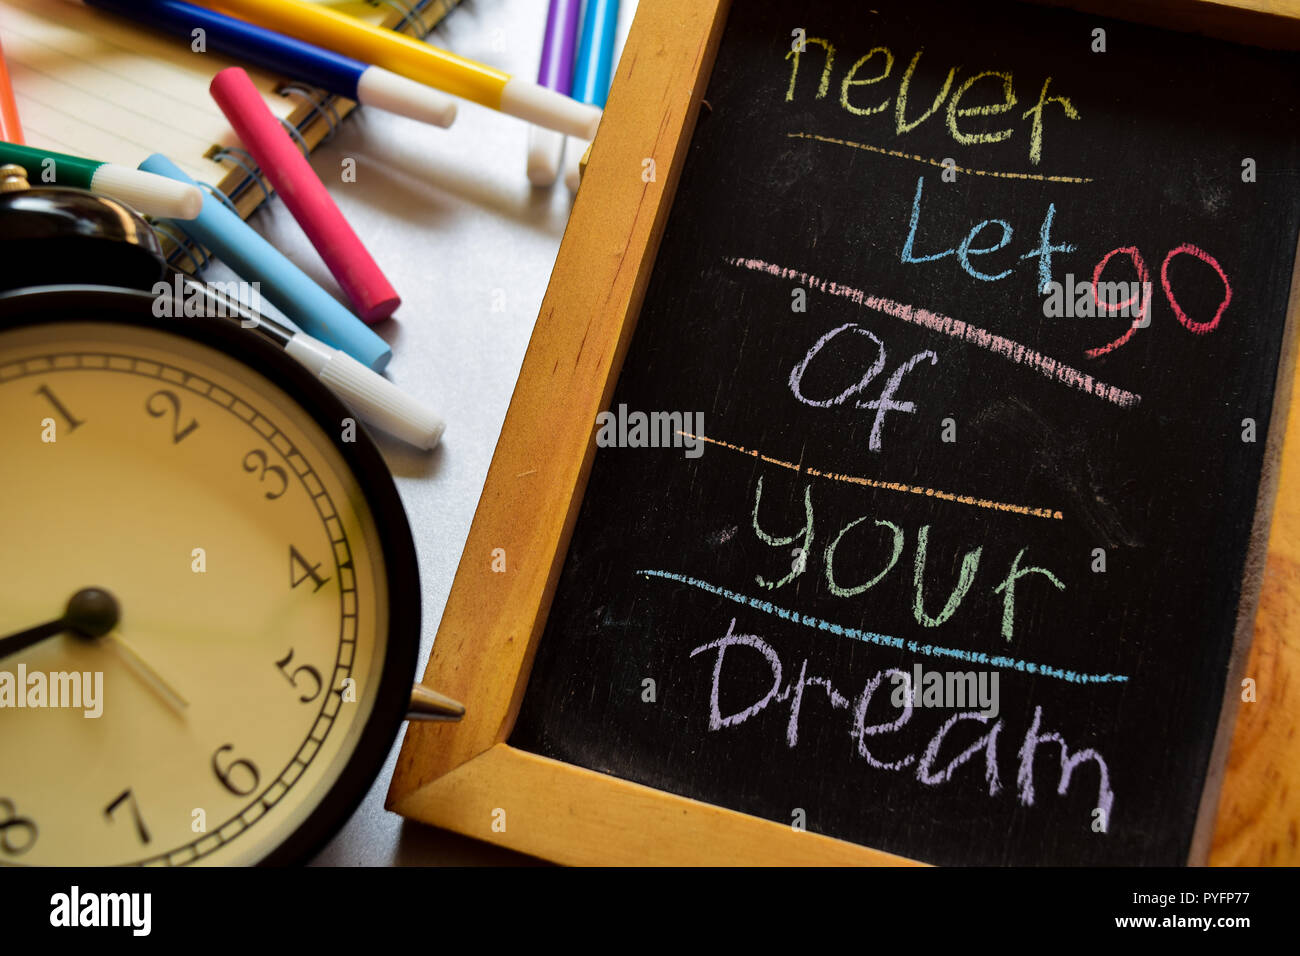 Never let go of your dream on phrase colorful handwritten on chalkboard, alarm clock with motivation and education concepts - Stock Image